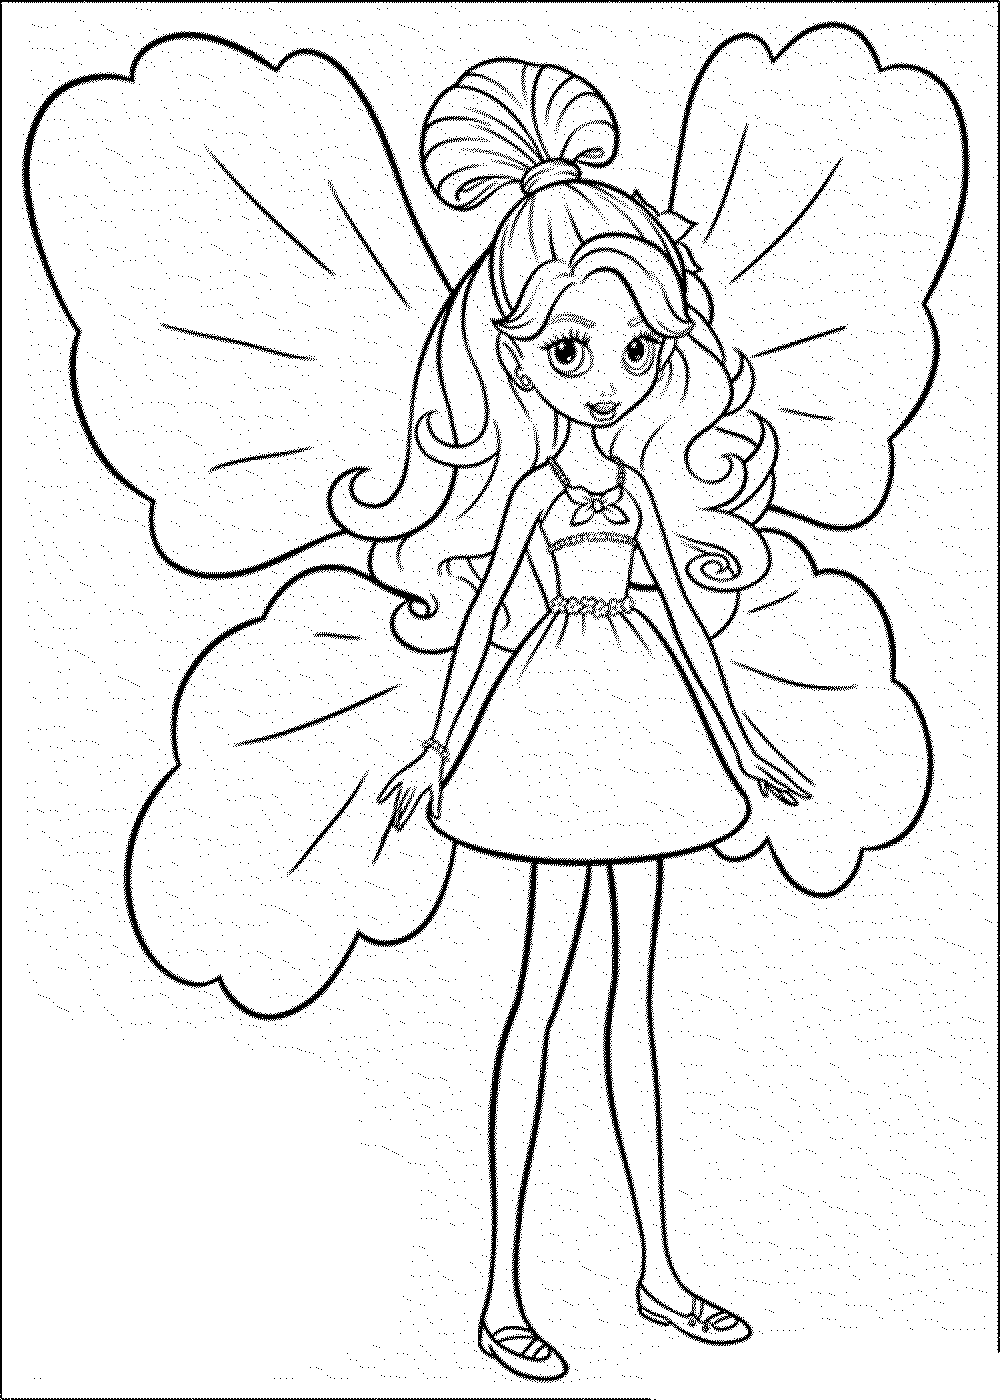 barbie-coloring-pages-for-girls | | BestAppsForKids.com